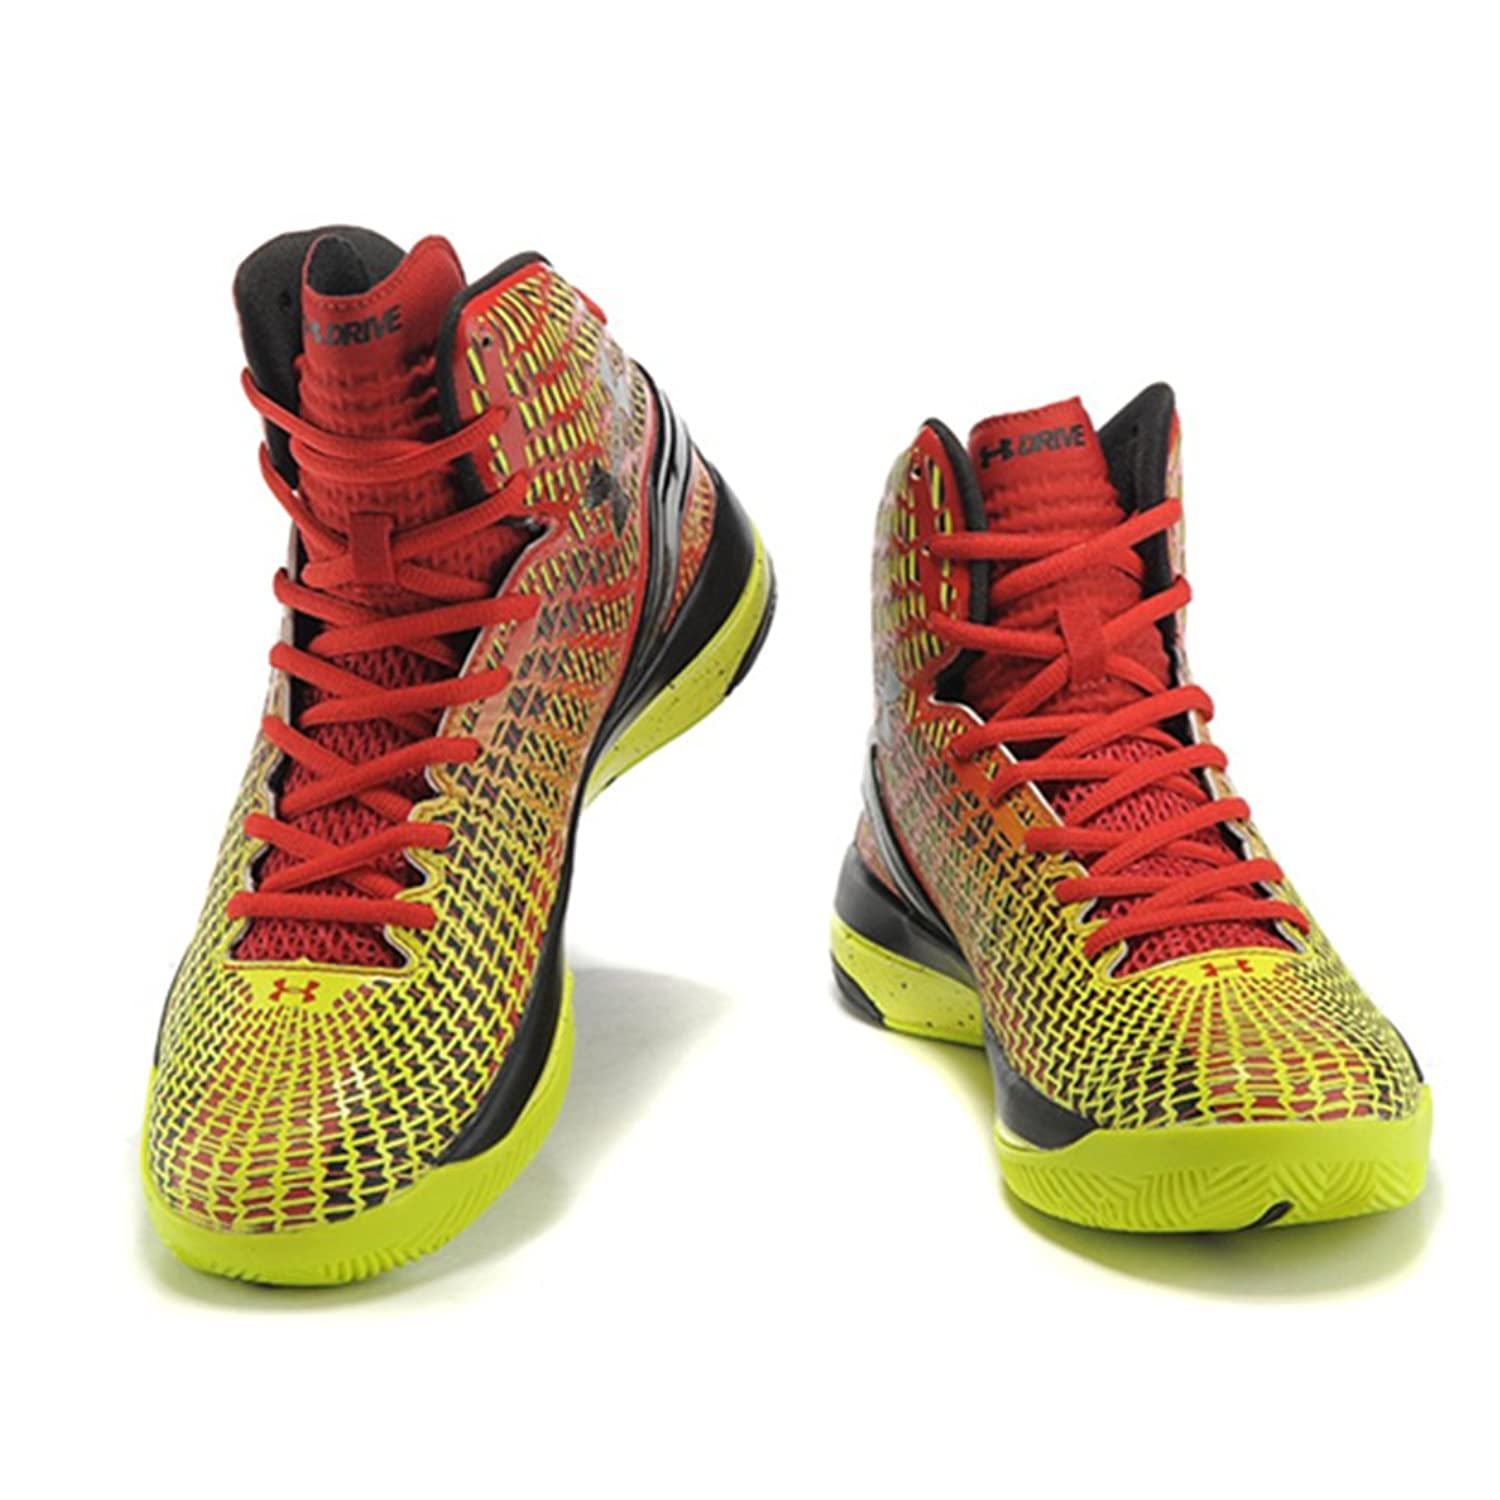 803a45a2b643 85%OFF Running Shoes Under Armour Curry 2 Boots Red and Yellow (3 ...